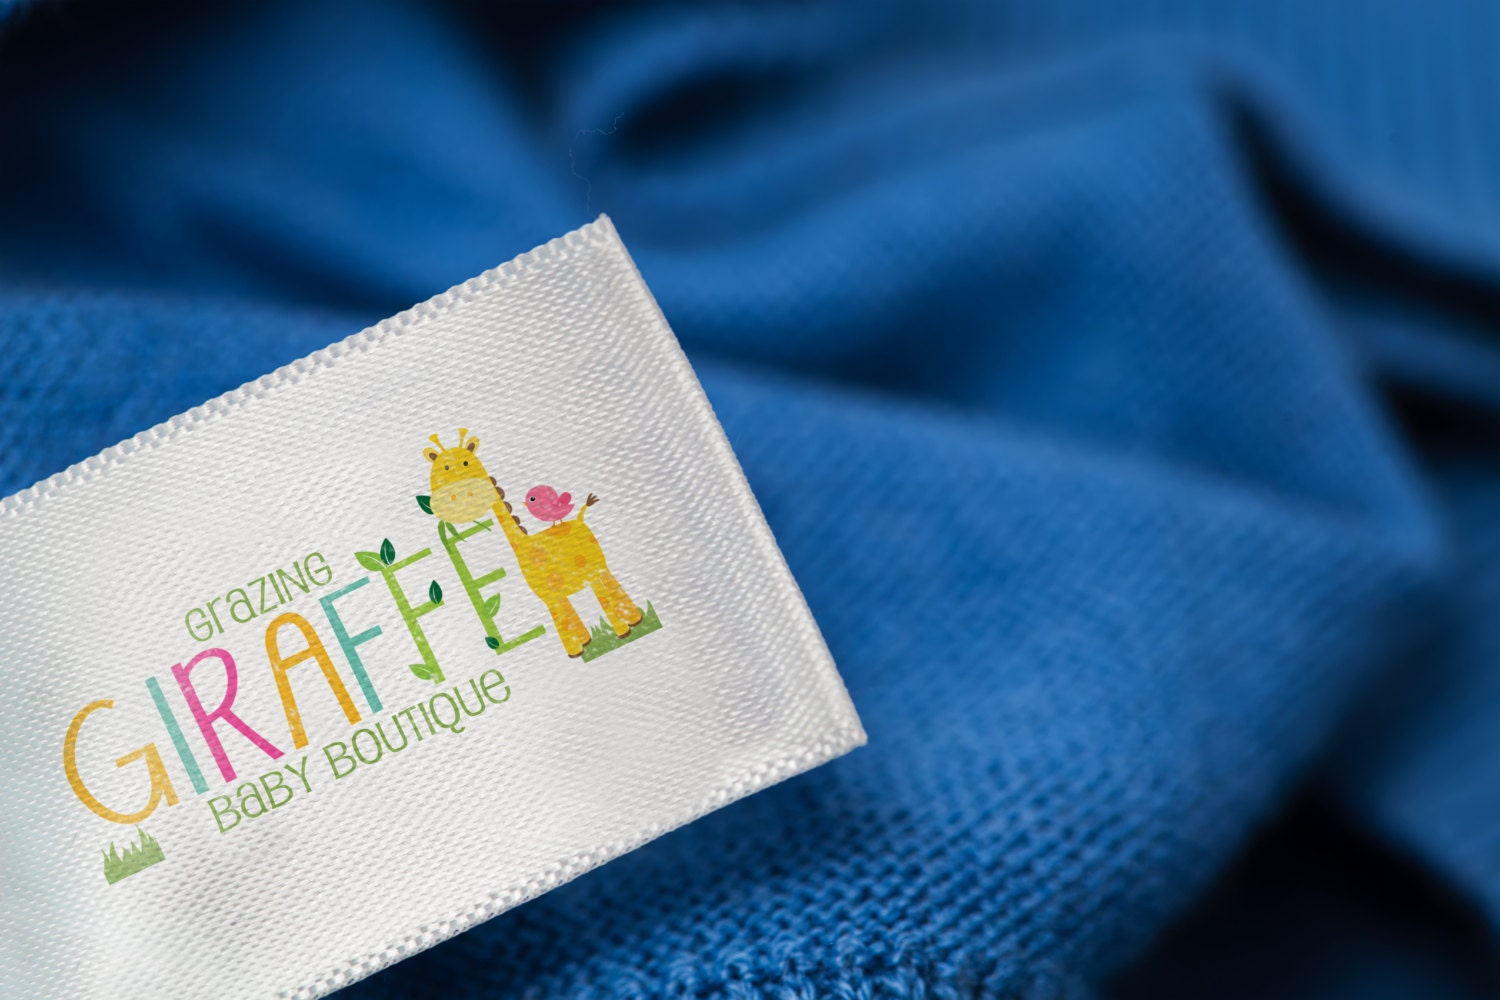 Custom Clothing Labels Sew On Create 1000 Personalized